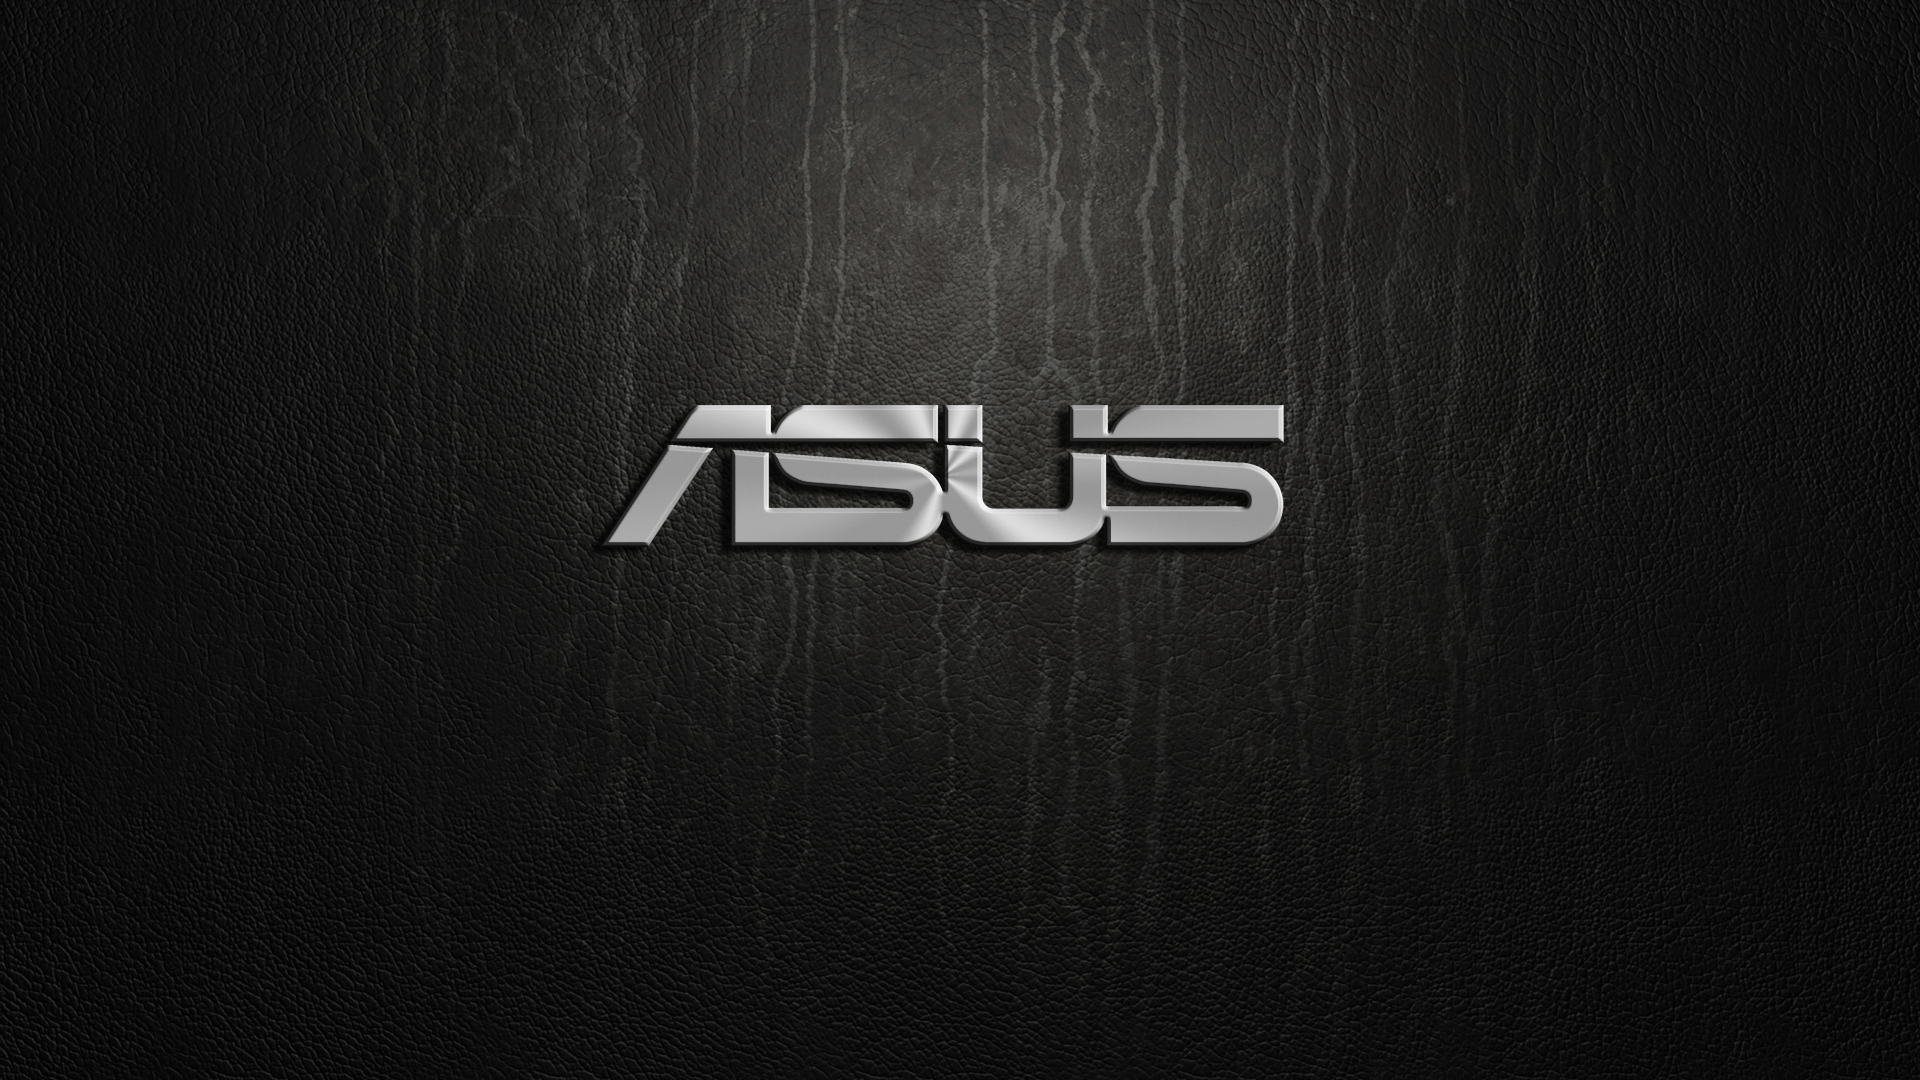 Asus Logo Wallpapers Top Free Asus Logo Backgrounds